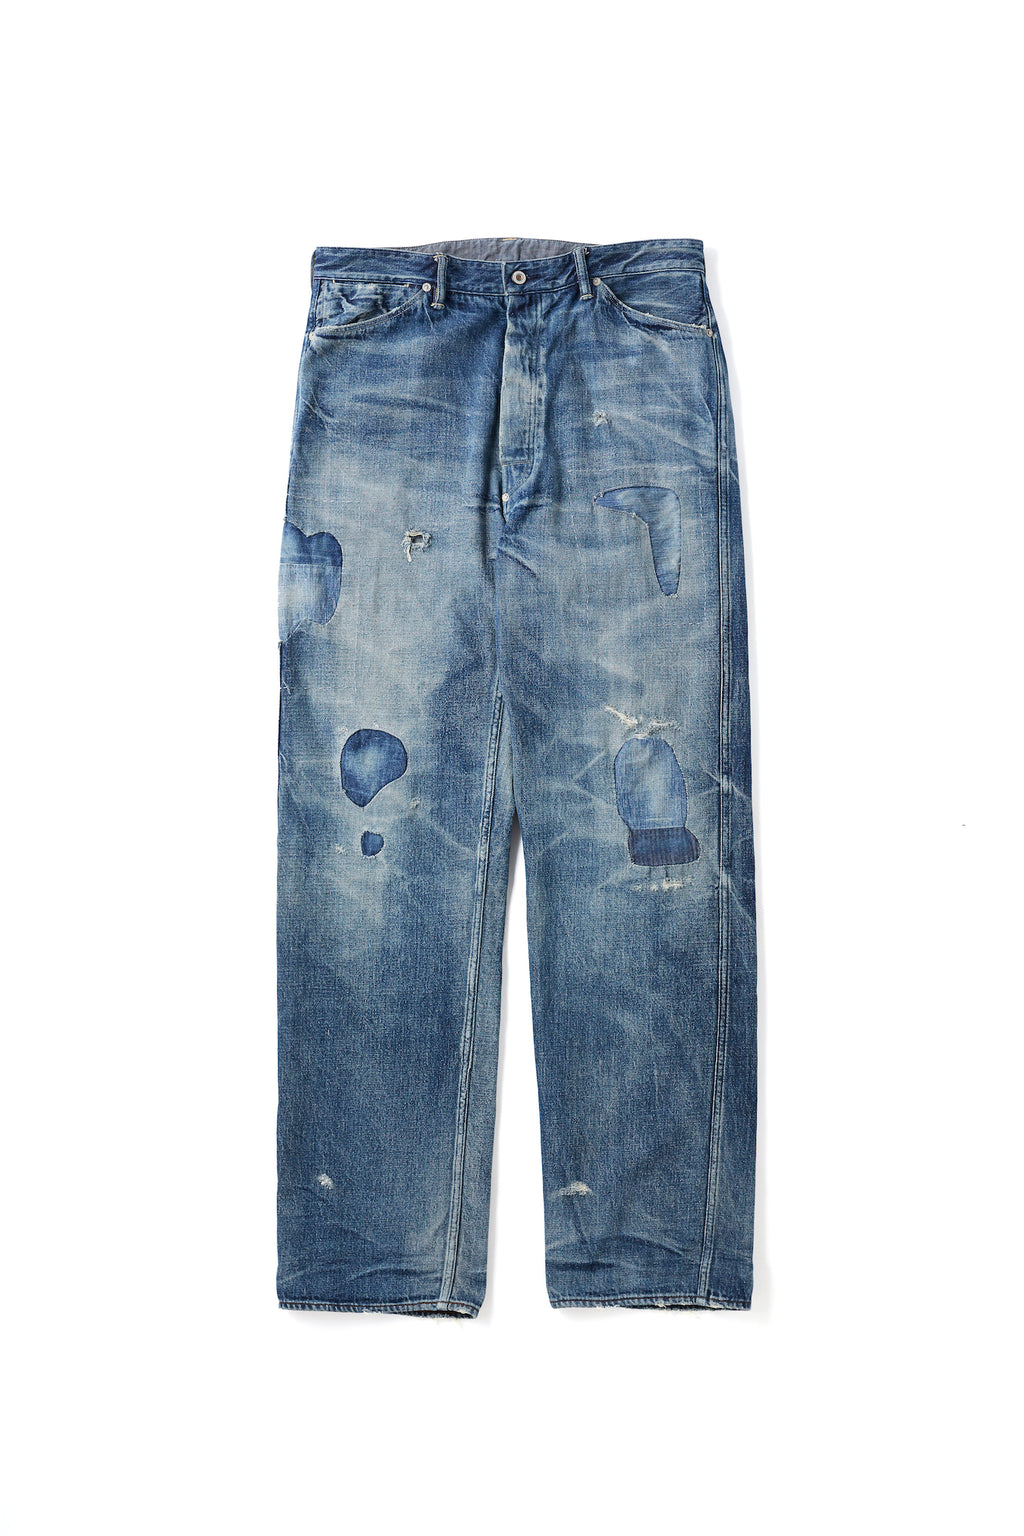 "PLEATED JEAN TROUSER ""946""(SCAR FACE) - 201OJ-PT05"